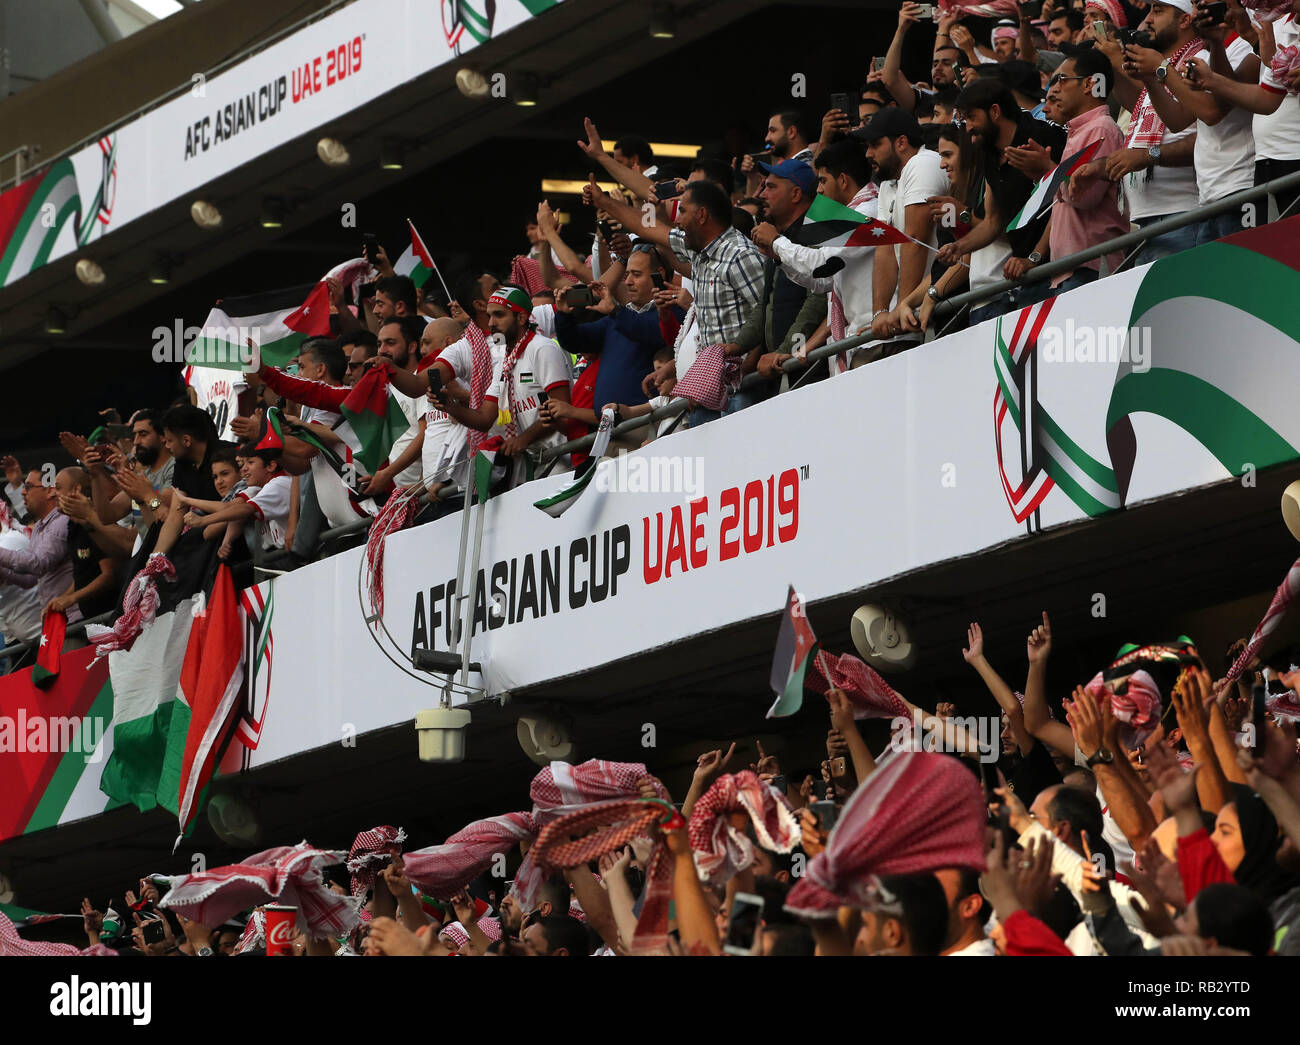 Fans react during the group B match between Jordan and Australia of the AFC  Asian Cup UAE 2019 in Al Ain, the UAE, on Jan.